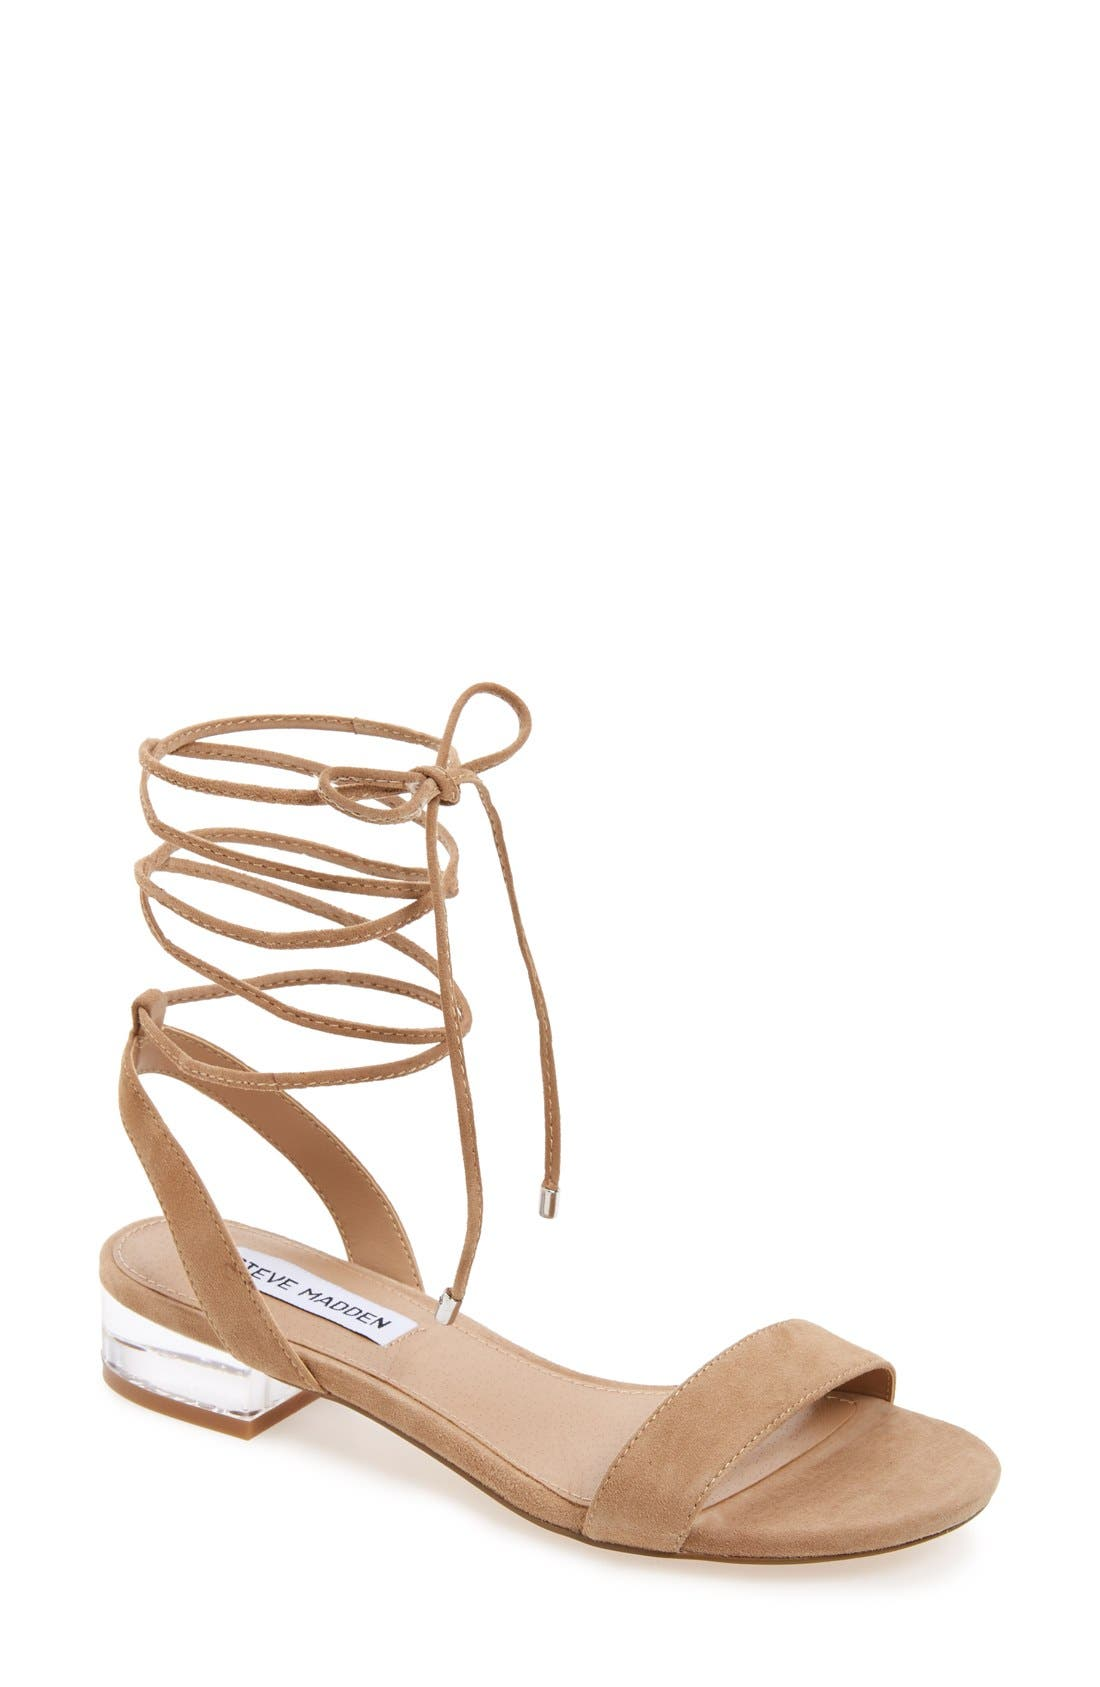 Alternate Image 1 Selected - Steve Madden 'Carolyn' Lace-Up Sandal (Women)